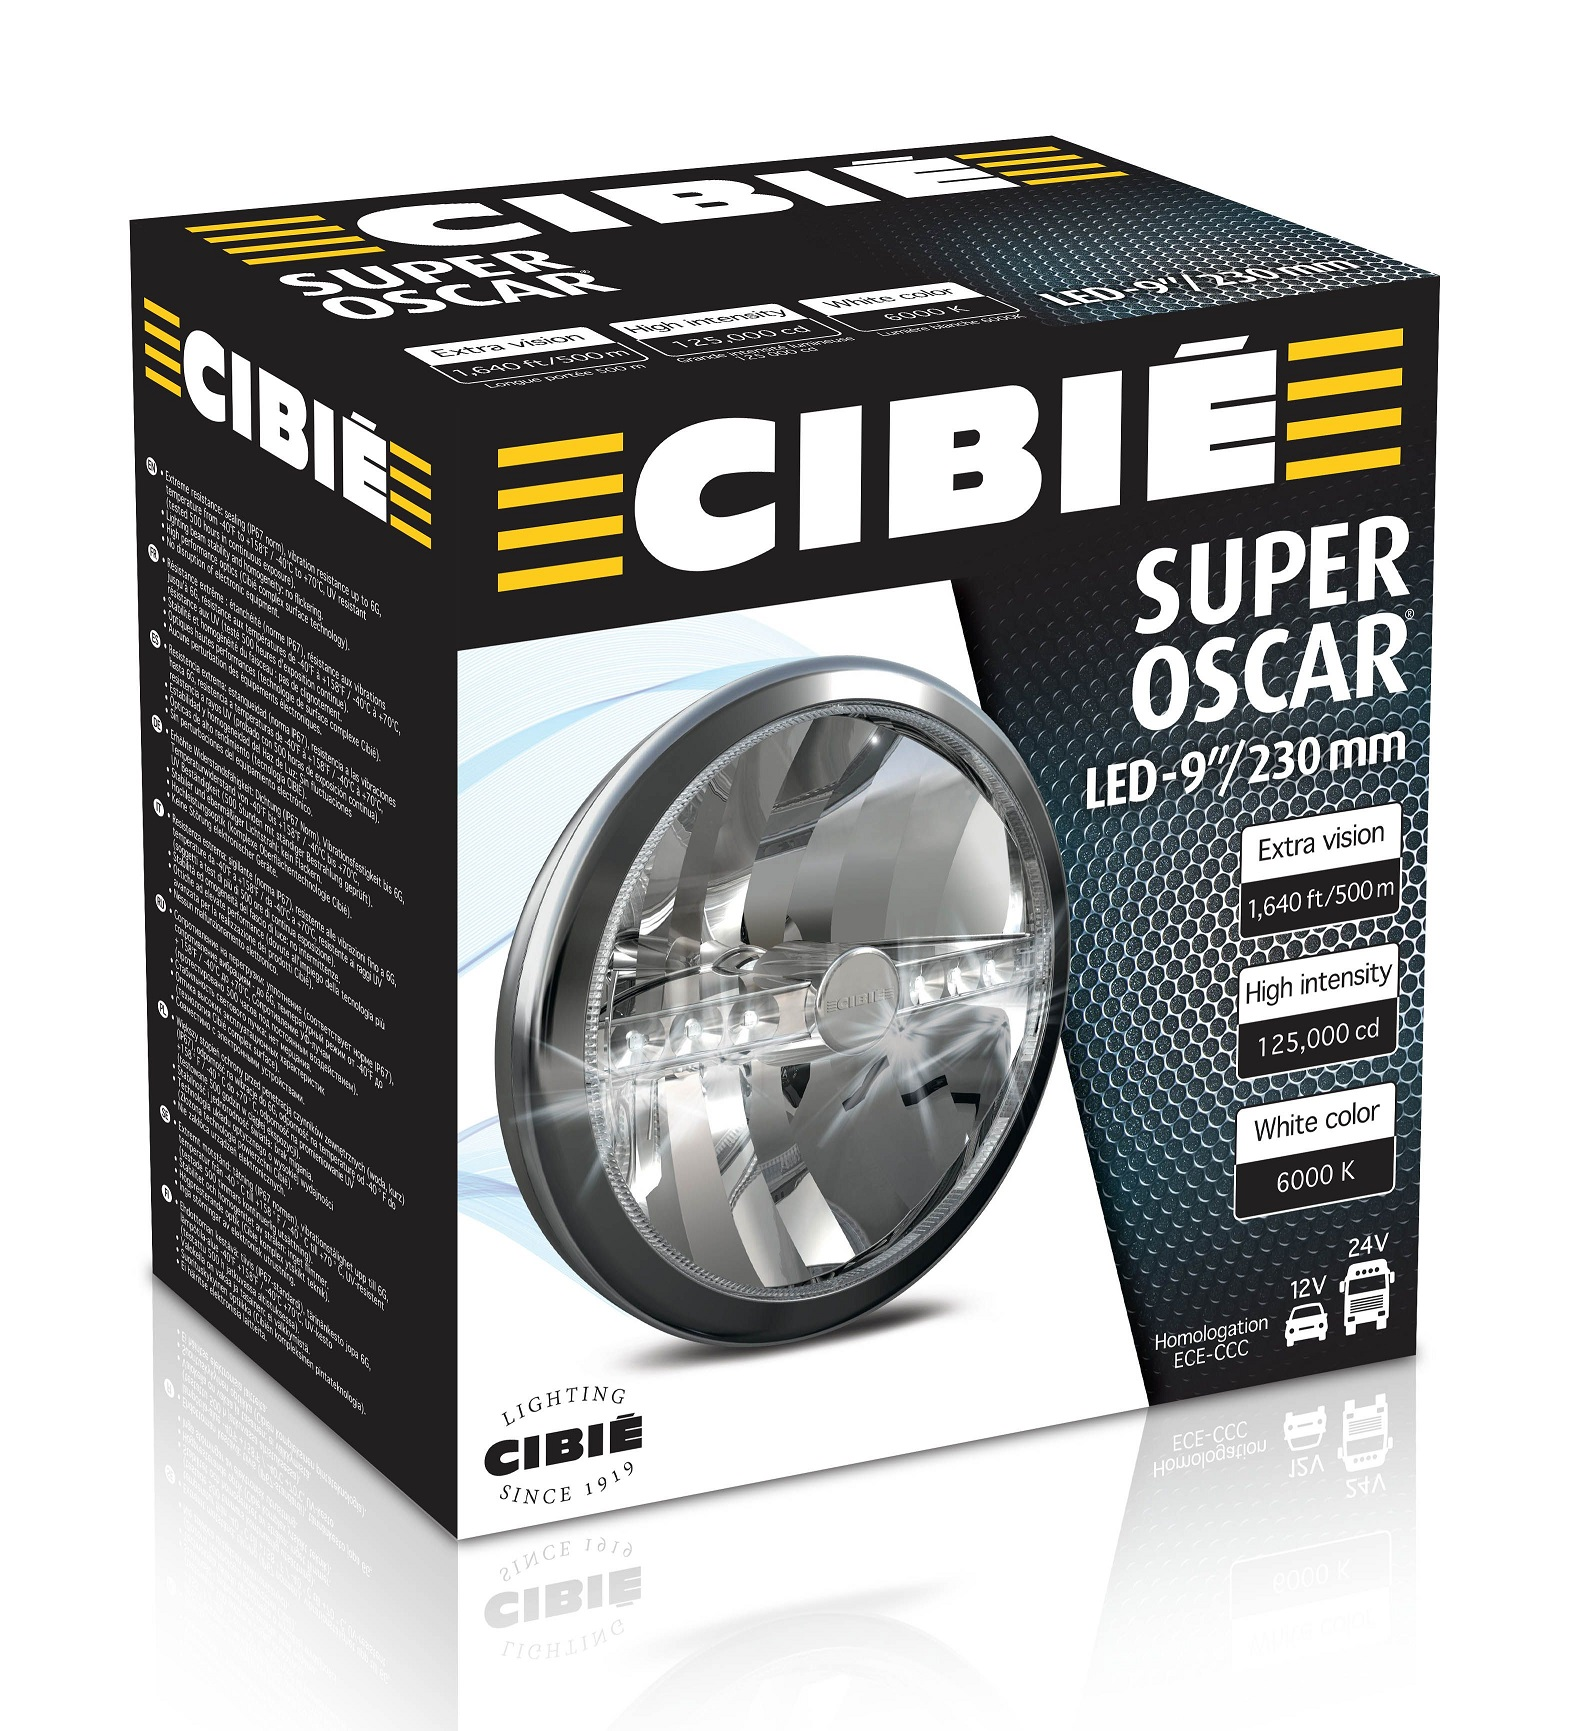 cibie super oscar LED